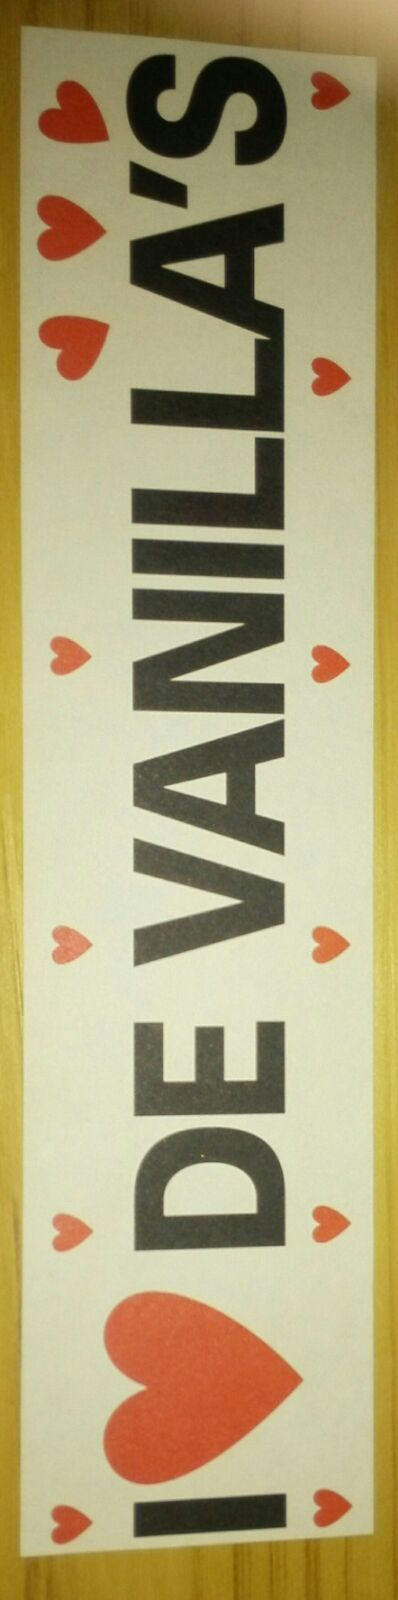 Vanillas sticker 02